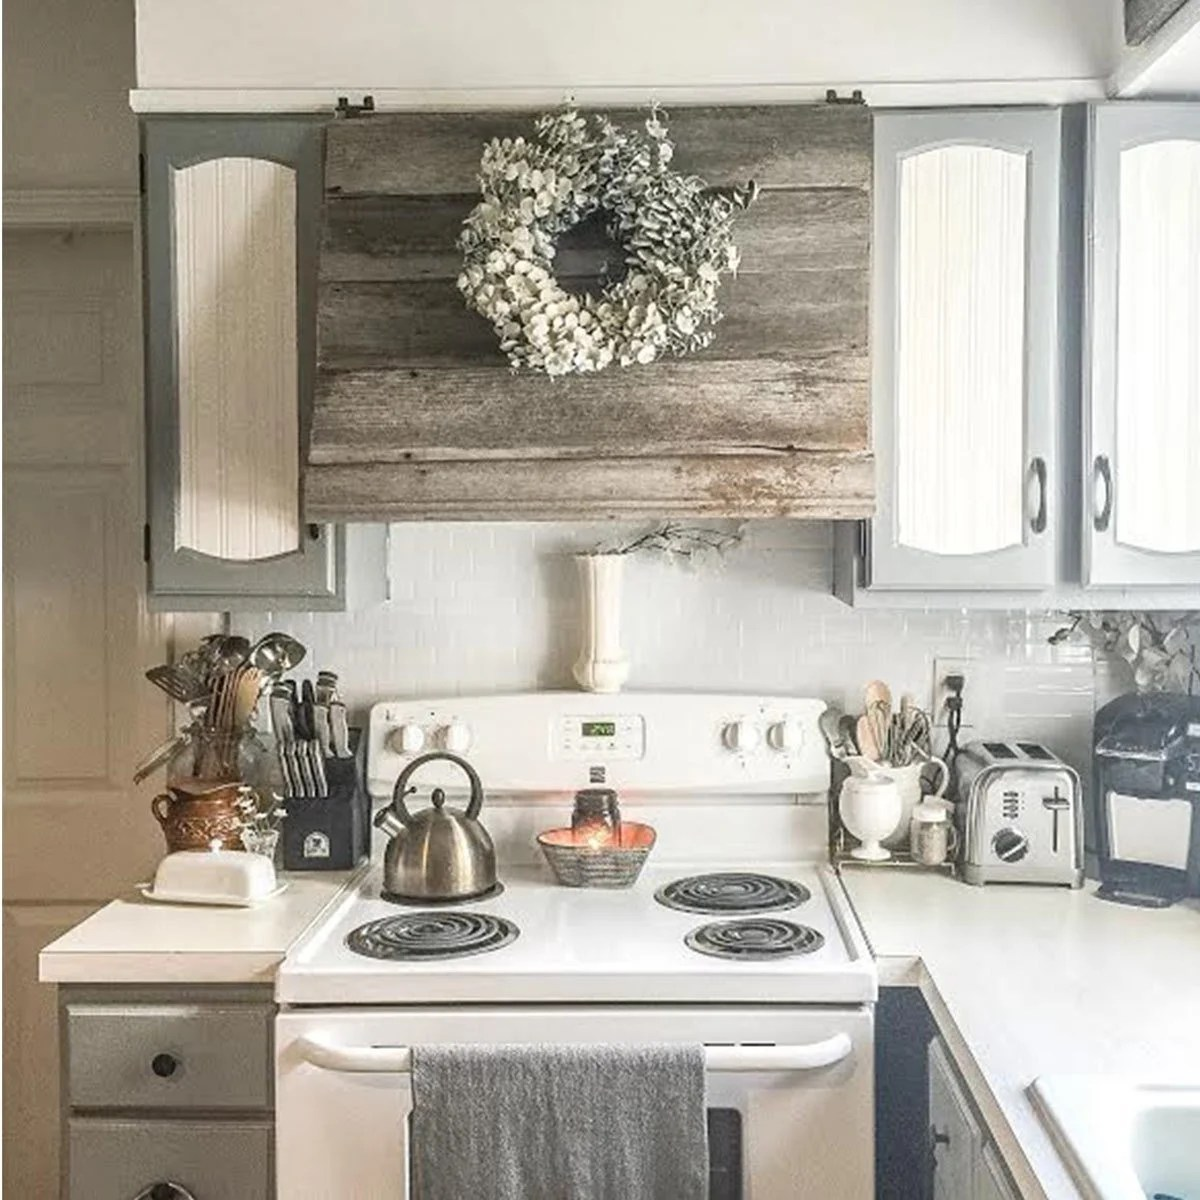 Kitchen Vent Creative Ways To Disguise A Range Hood Vent The Family Handyman